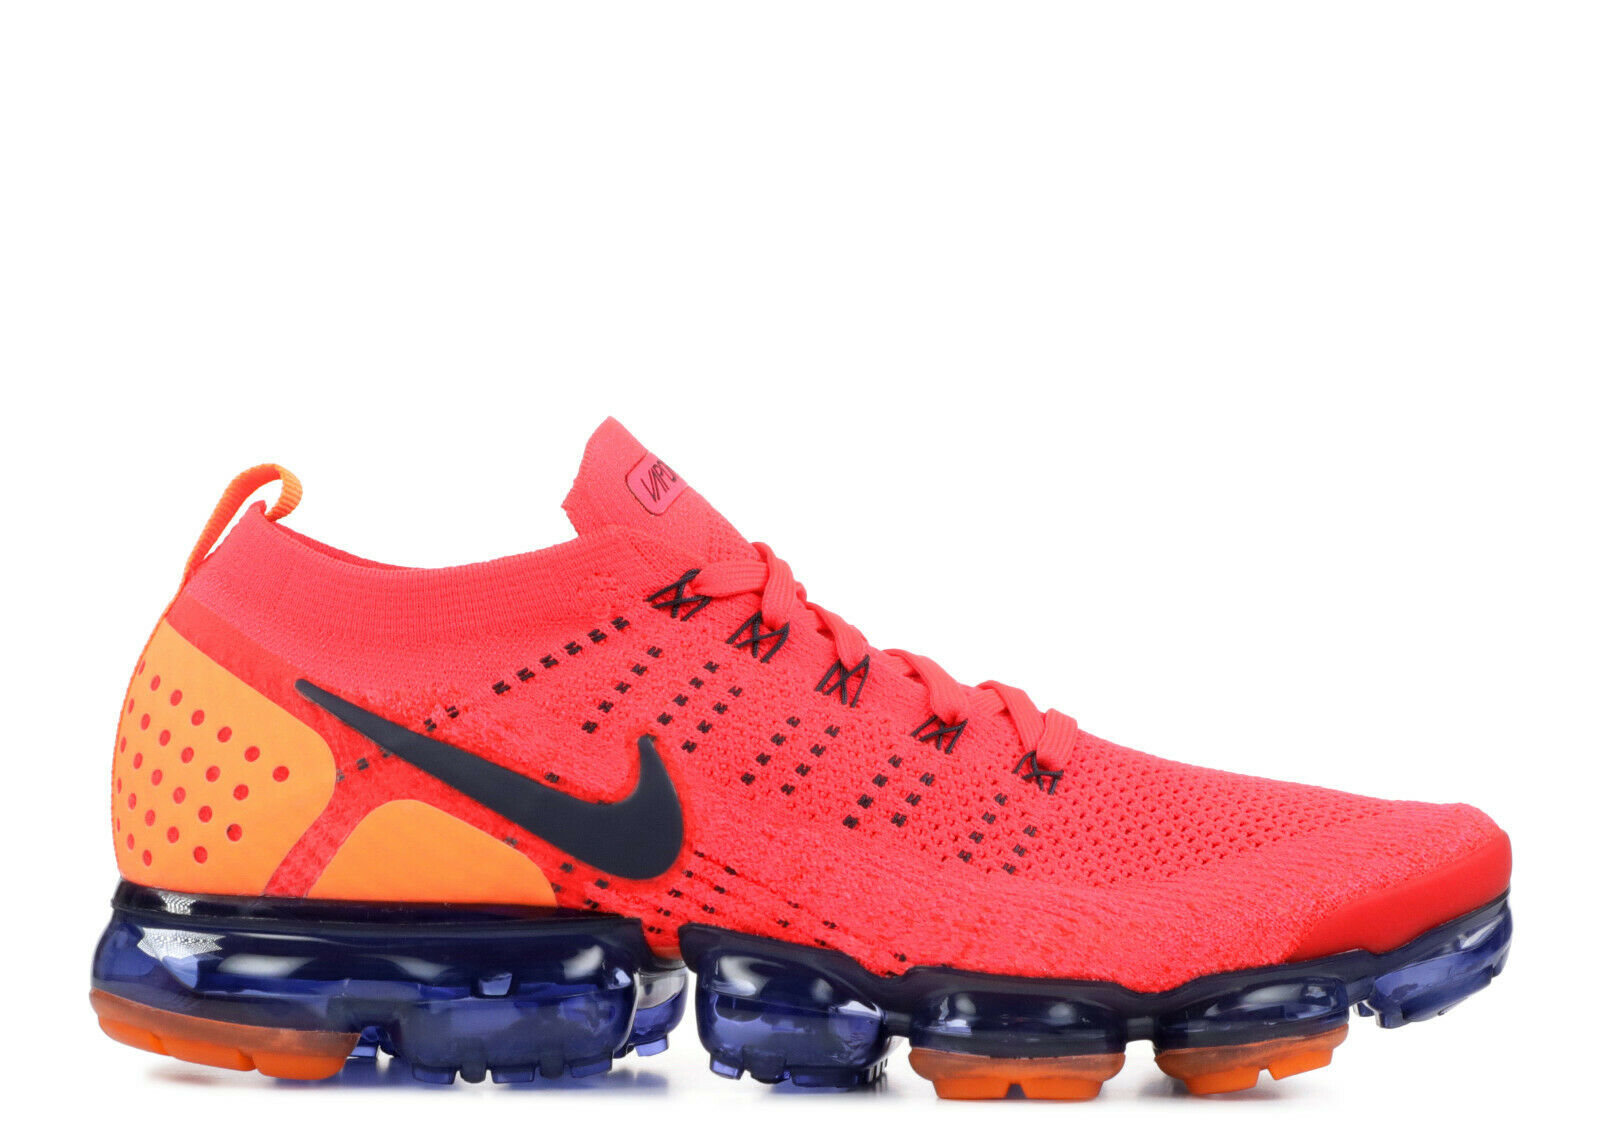 Nike Air Vapormax Flyknit 2.0 Running shoes Red Orbit Obsidian SZ 11.5 US